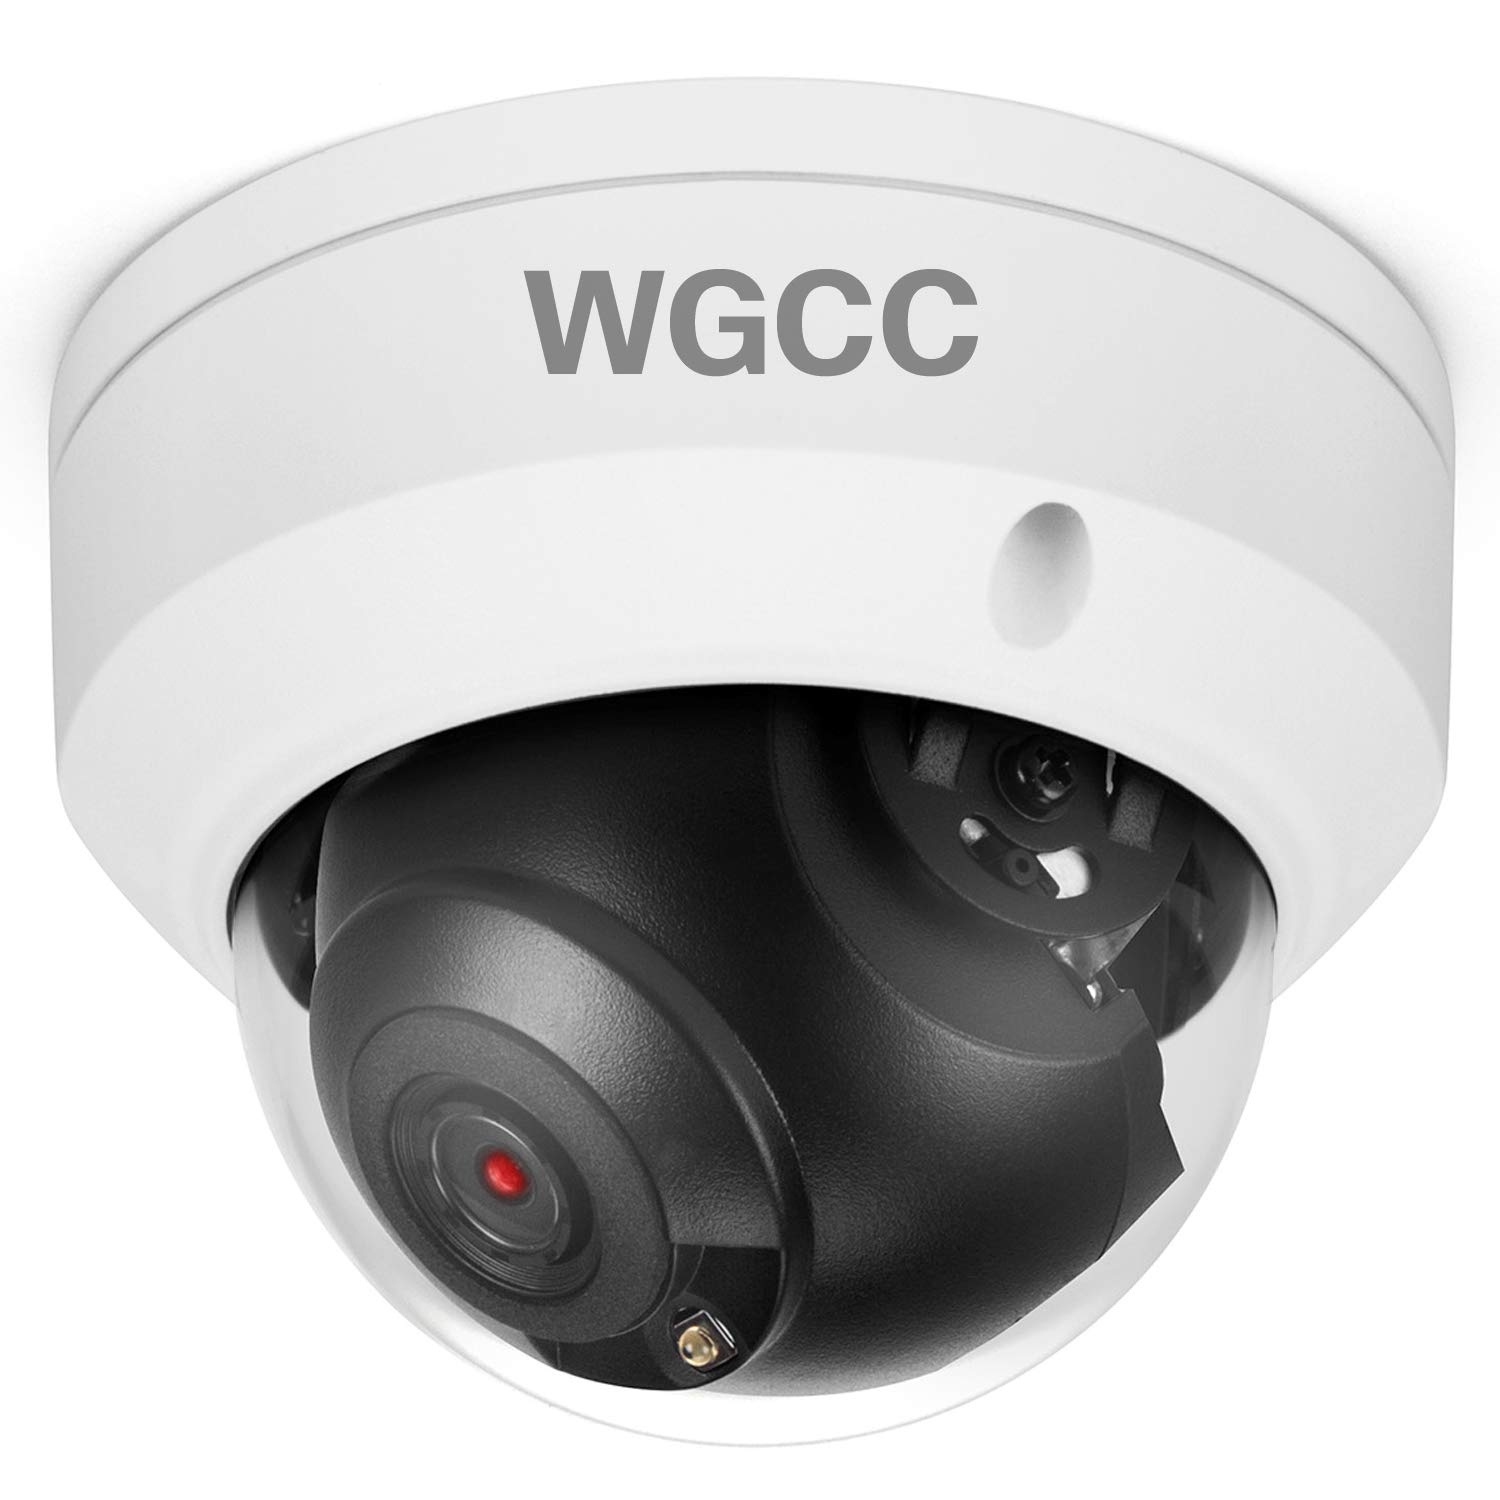 WGCC Outdoor Security Viewing Waterproof